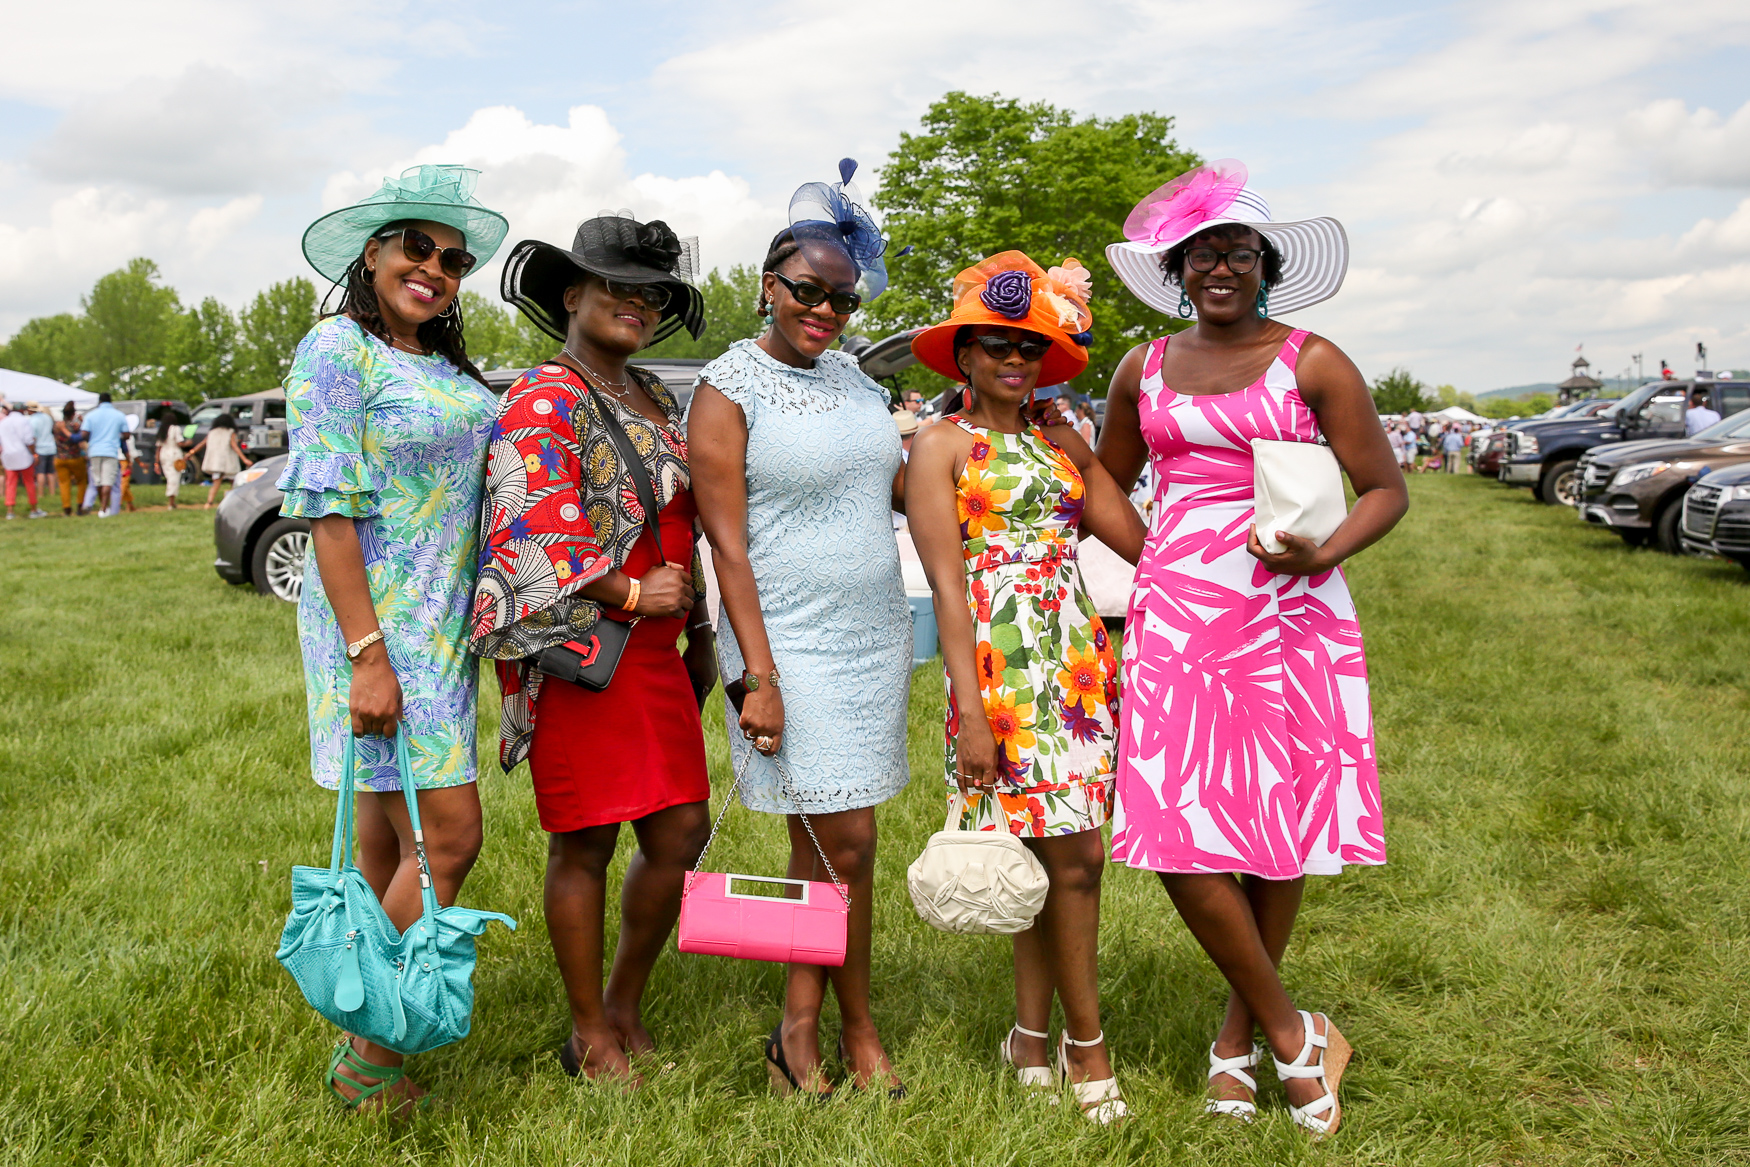 Thousands of people turned out for the 94th annual Virginia Gold Cup in Warrenton, Virginia on May 4. In addition to thrilling horse races, guests also enjoyed a fancy hat competition, tailgating, betting, cigars and living it up. (Amanda Andrade-Rhoades/DC Refined)